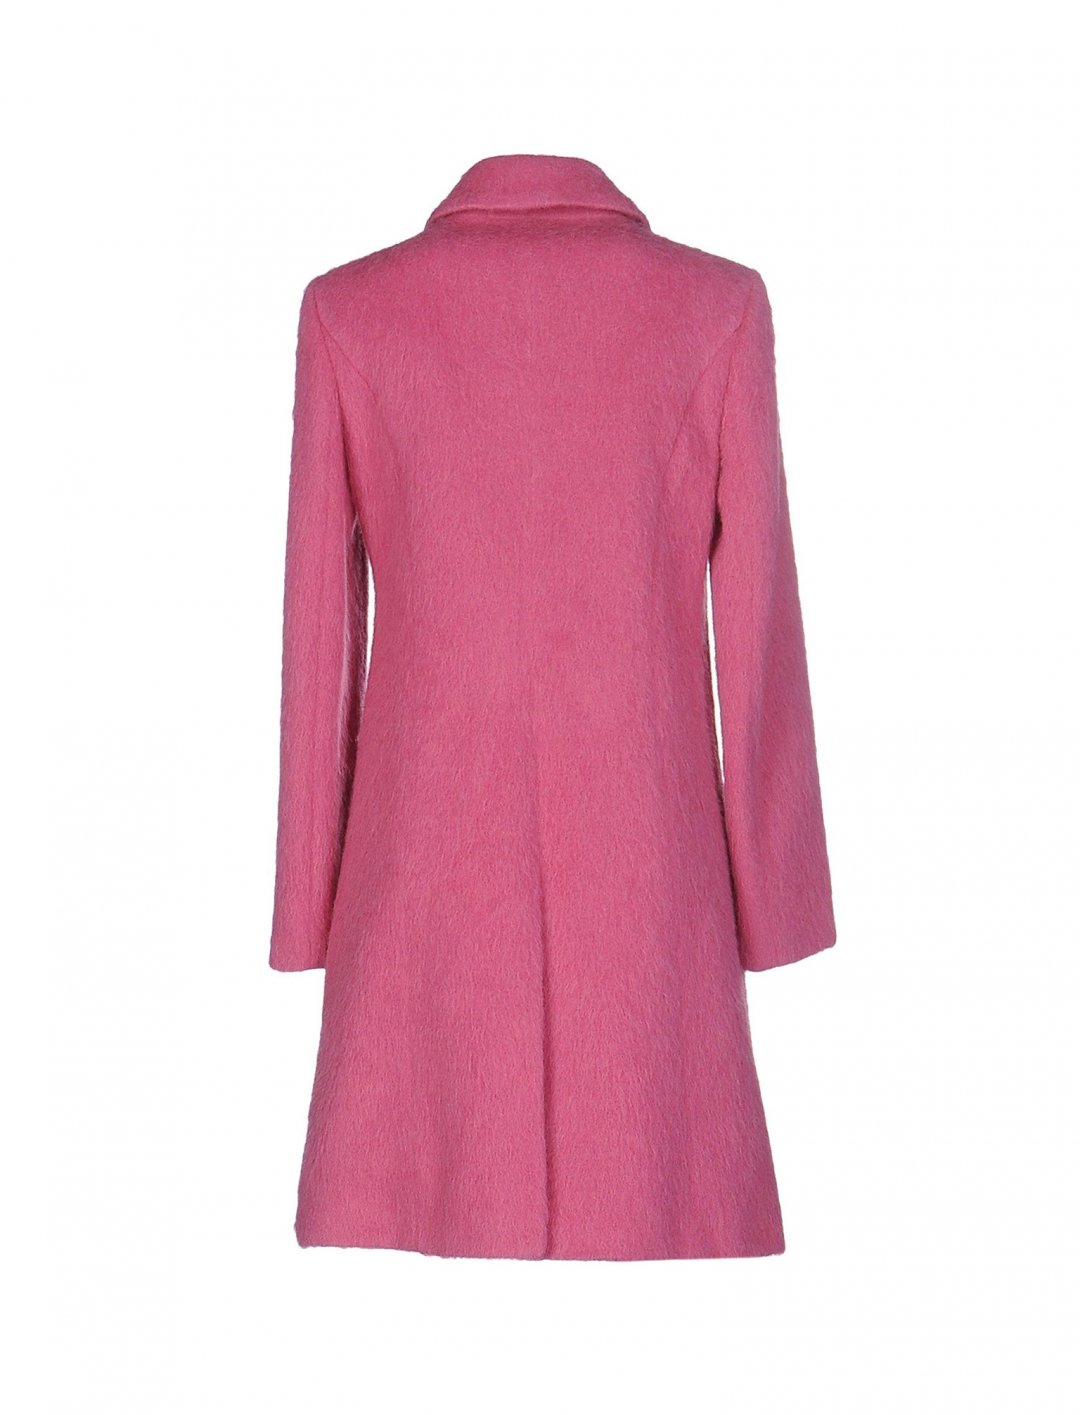 "Coat In Pink {""id"":5,""product_section_id"":1,""name"":""Clothing"",""order"":5} Liviana Conti"